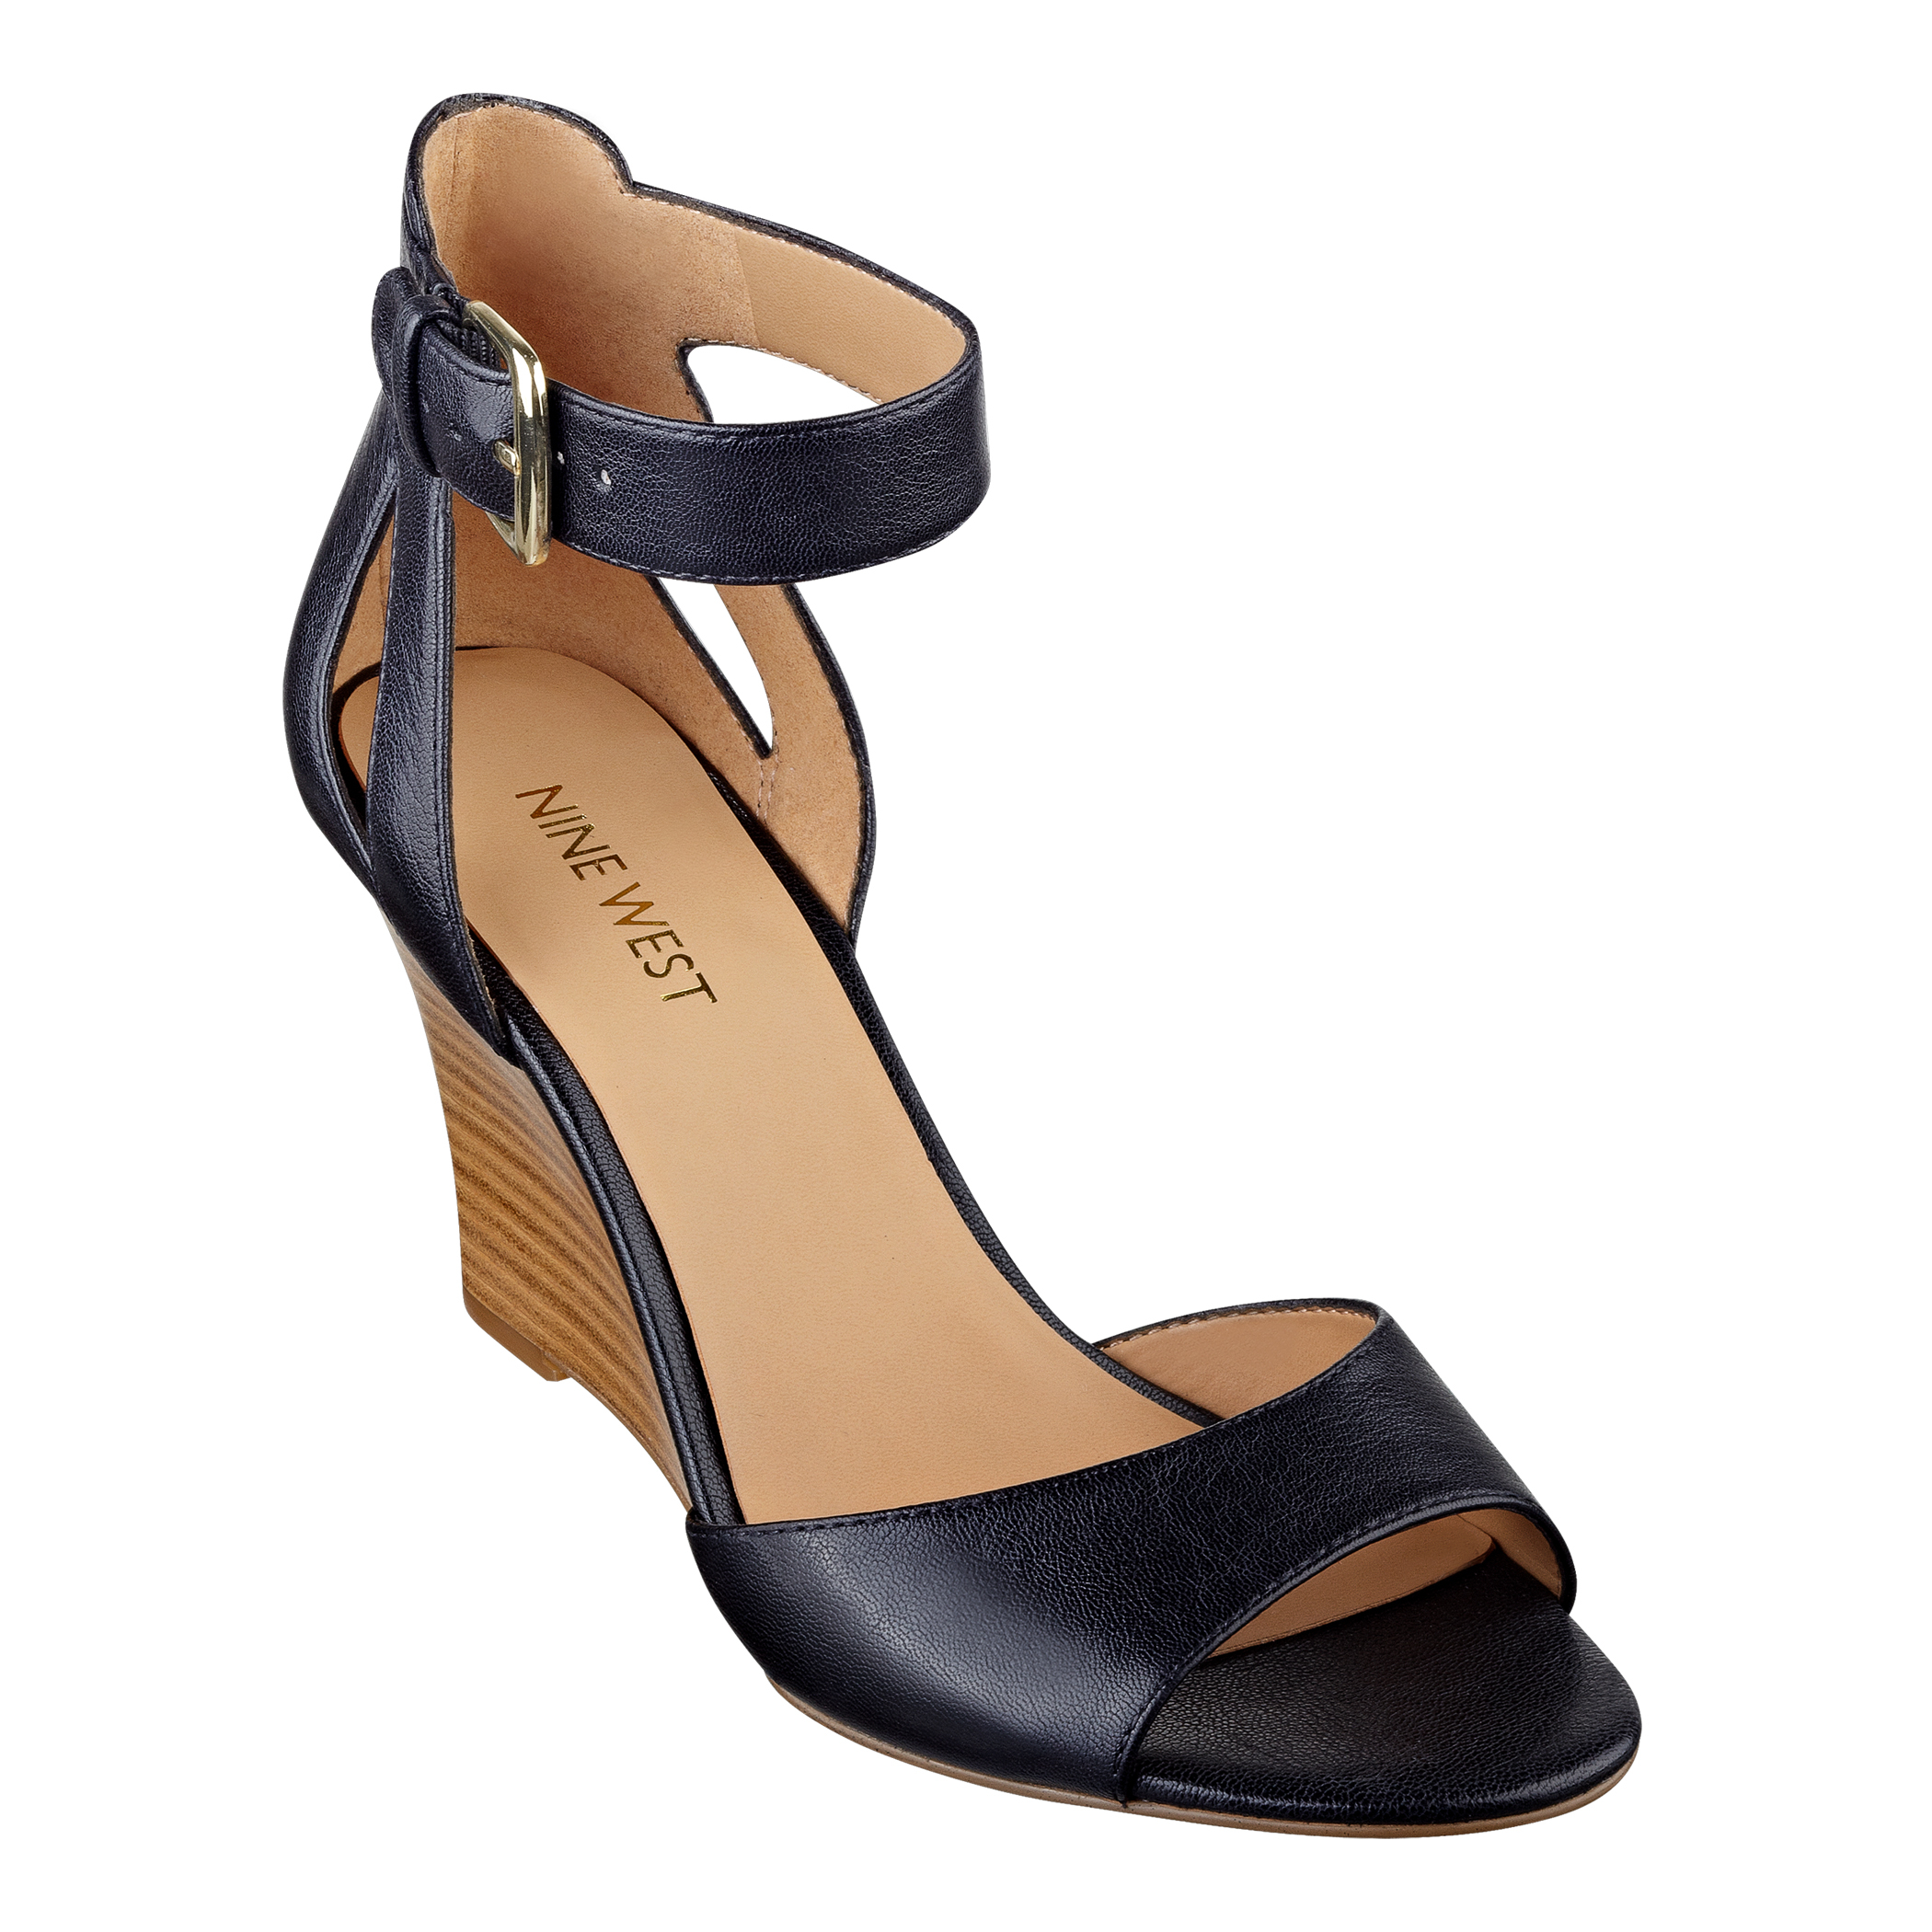 5597017885a6 Lyst - Nine West Floyd Ankle Strap Wedge Sandals in Black